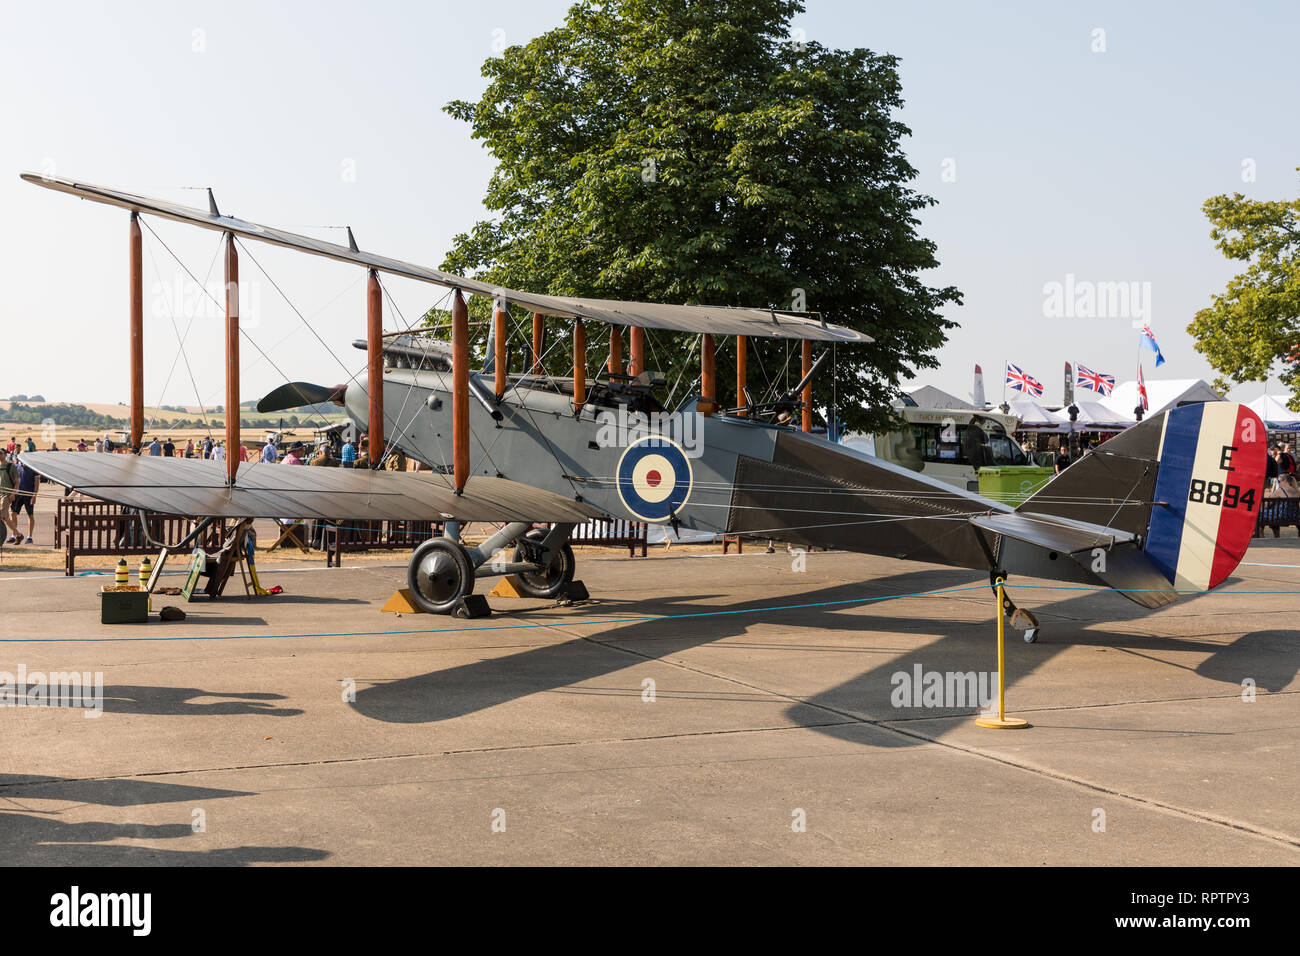 De Havilland DH-9 E-8894 biplane in the static display at the IWM Duxford Flying Legends airshow - Stock Image